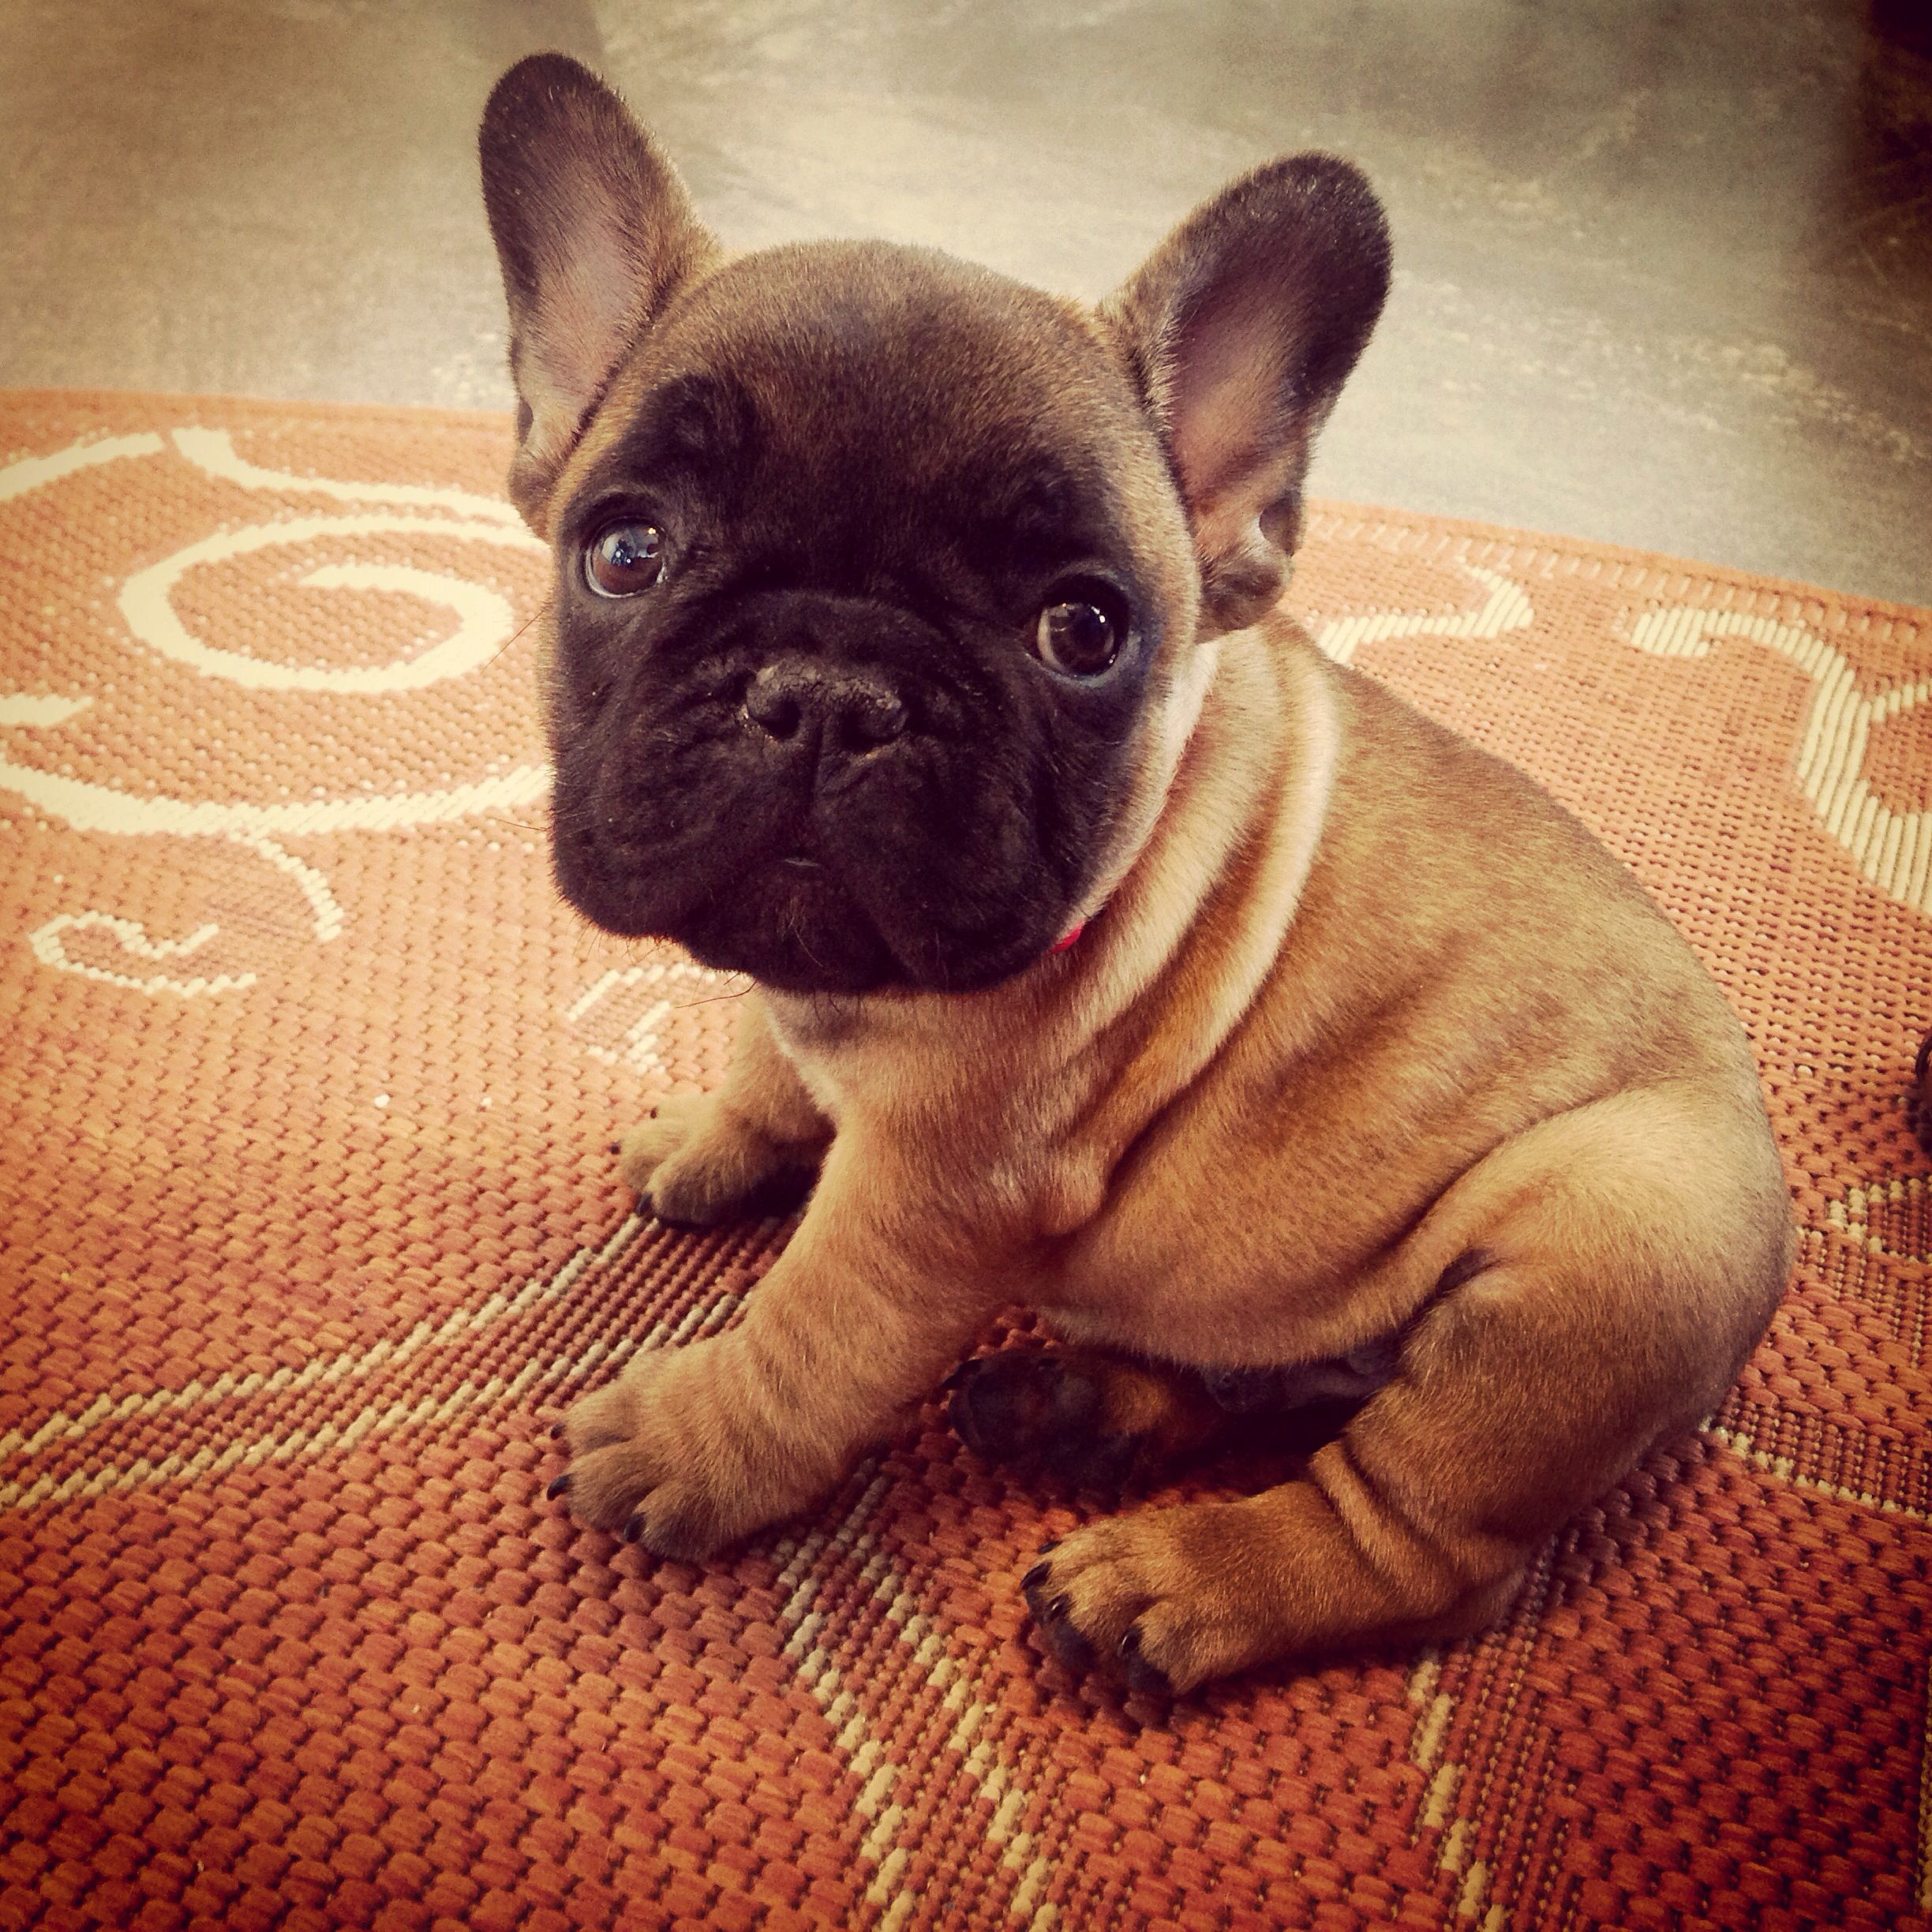 snuggly french bulldog puppy at 8 weeks old. ig